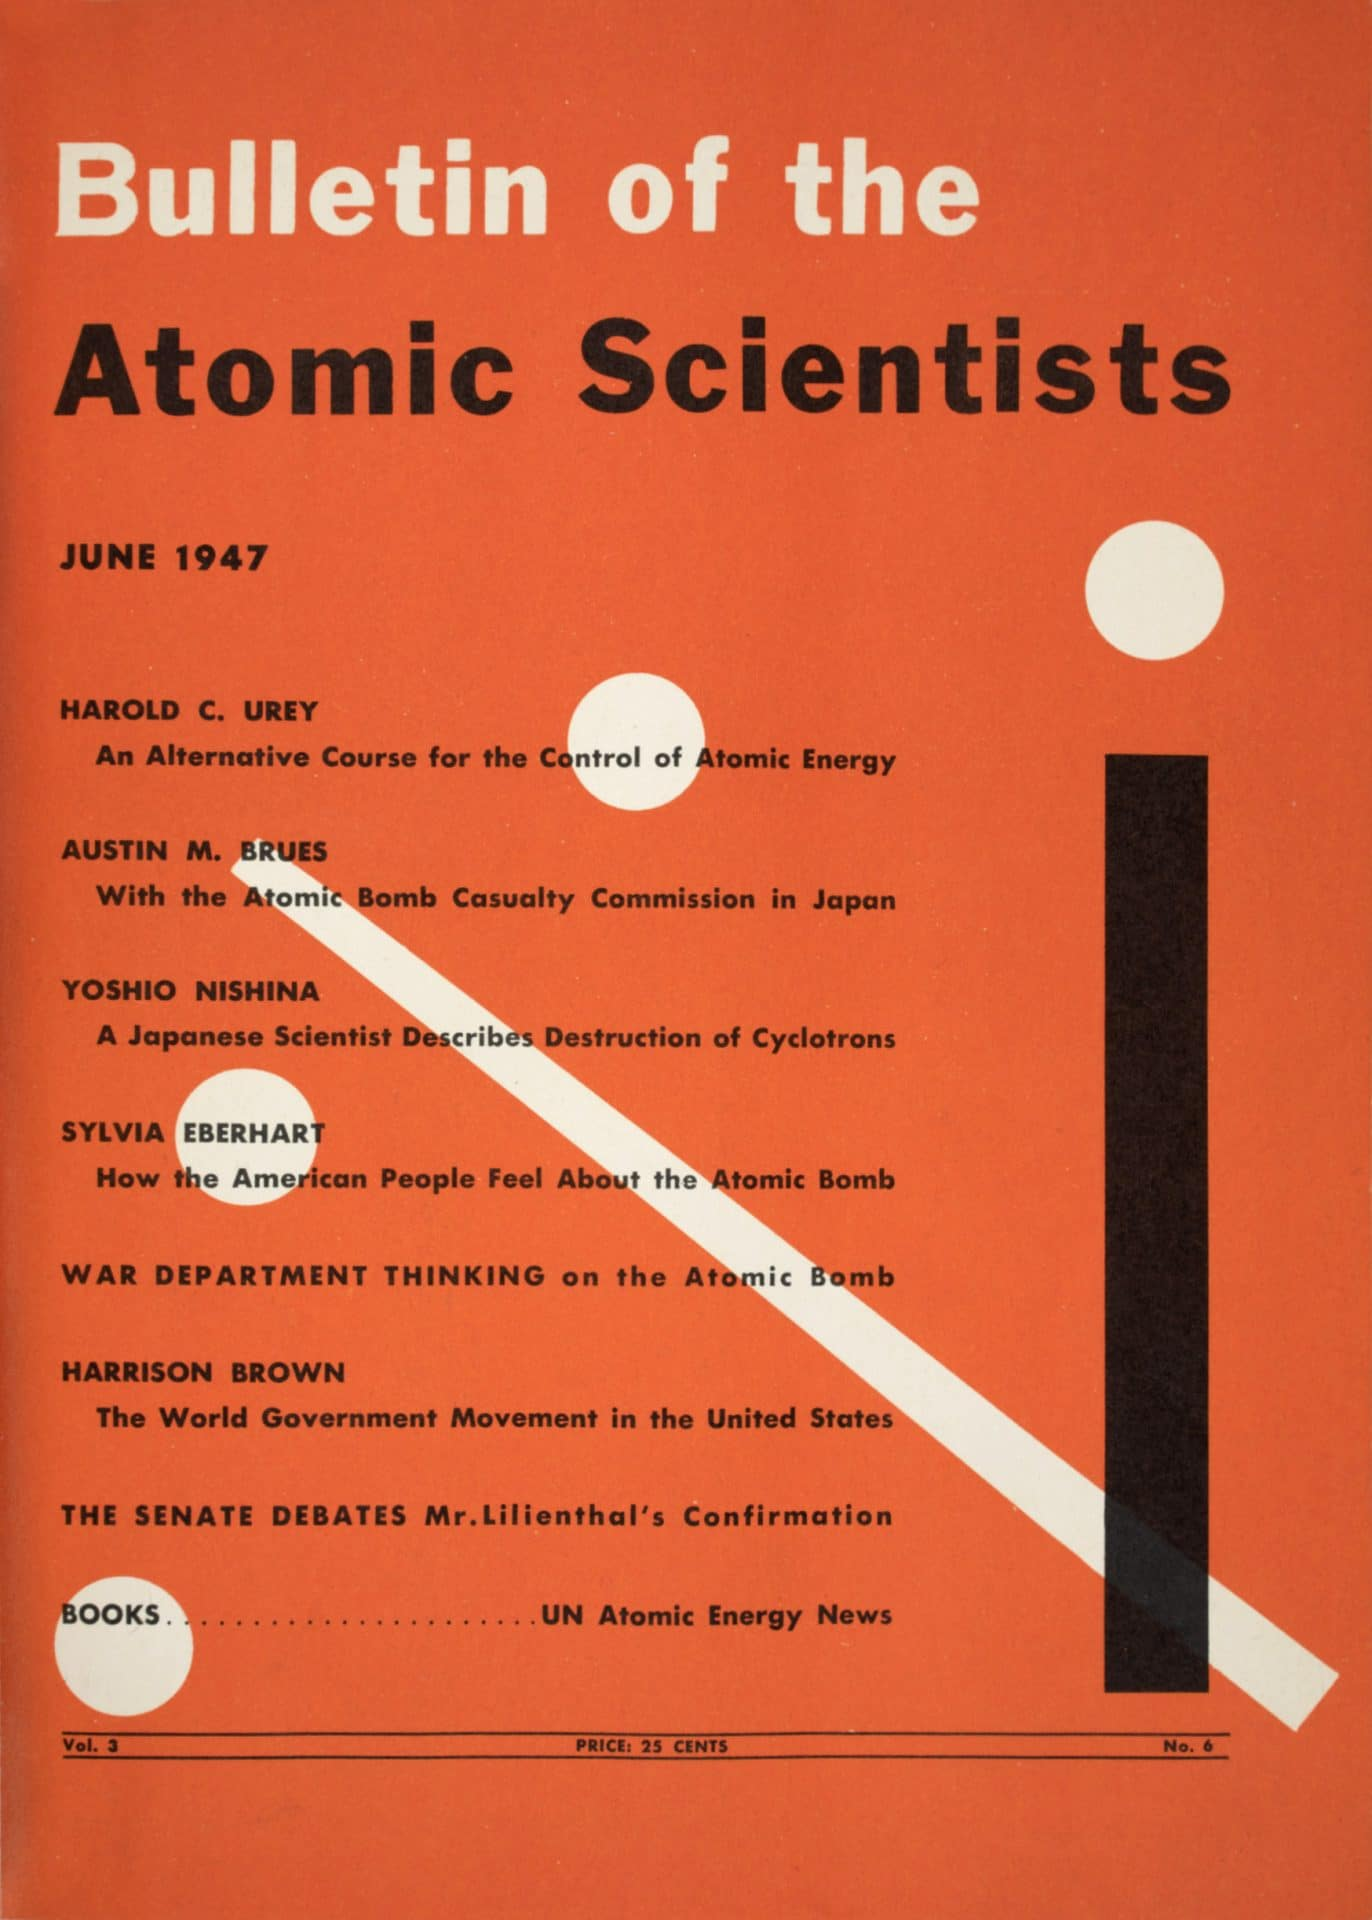 The Bulletin becomes a full-fledged magazine in 1947